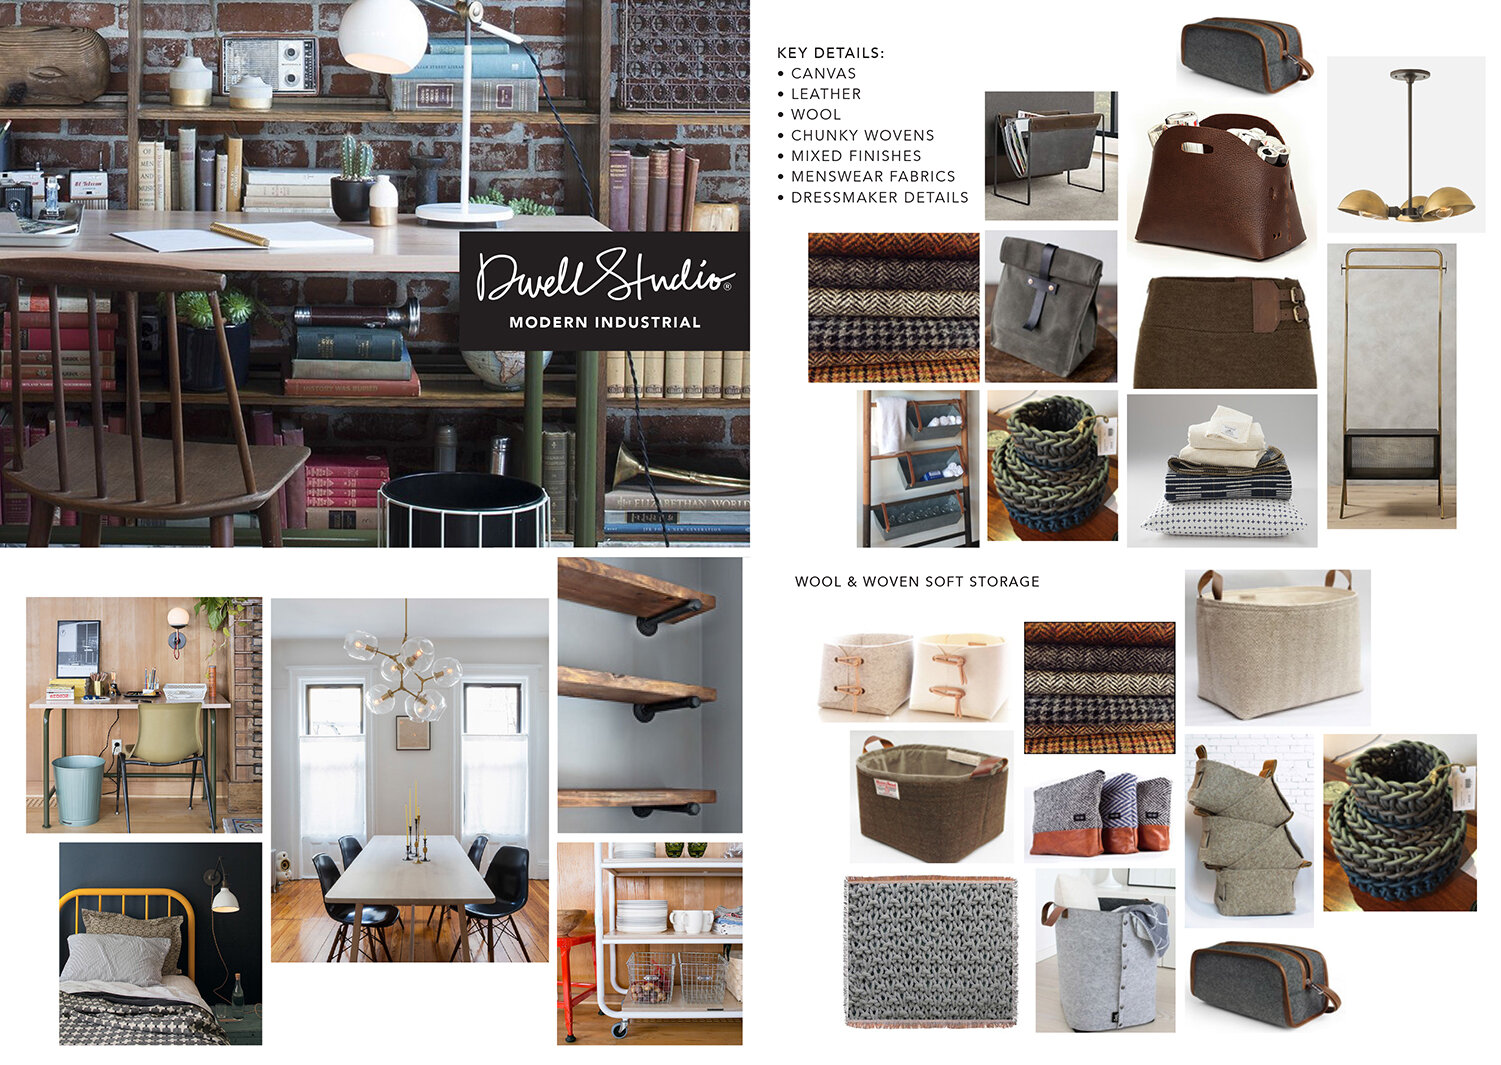 DwellStudio Product Concept & Direction